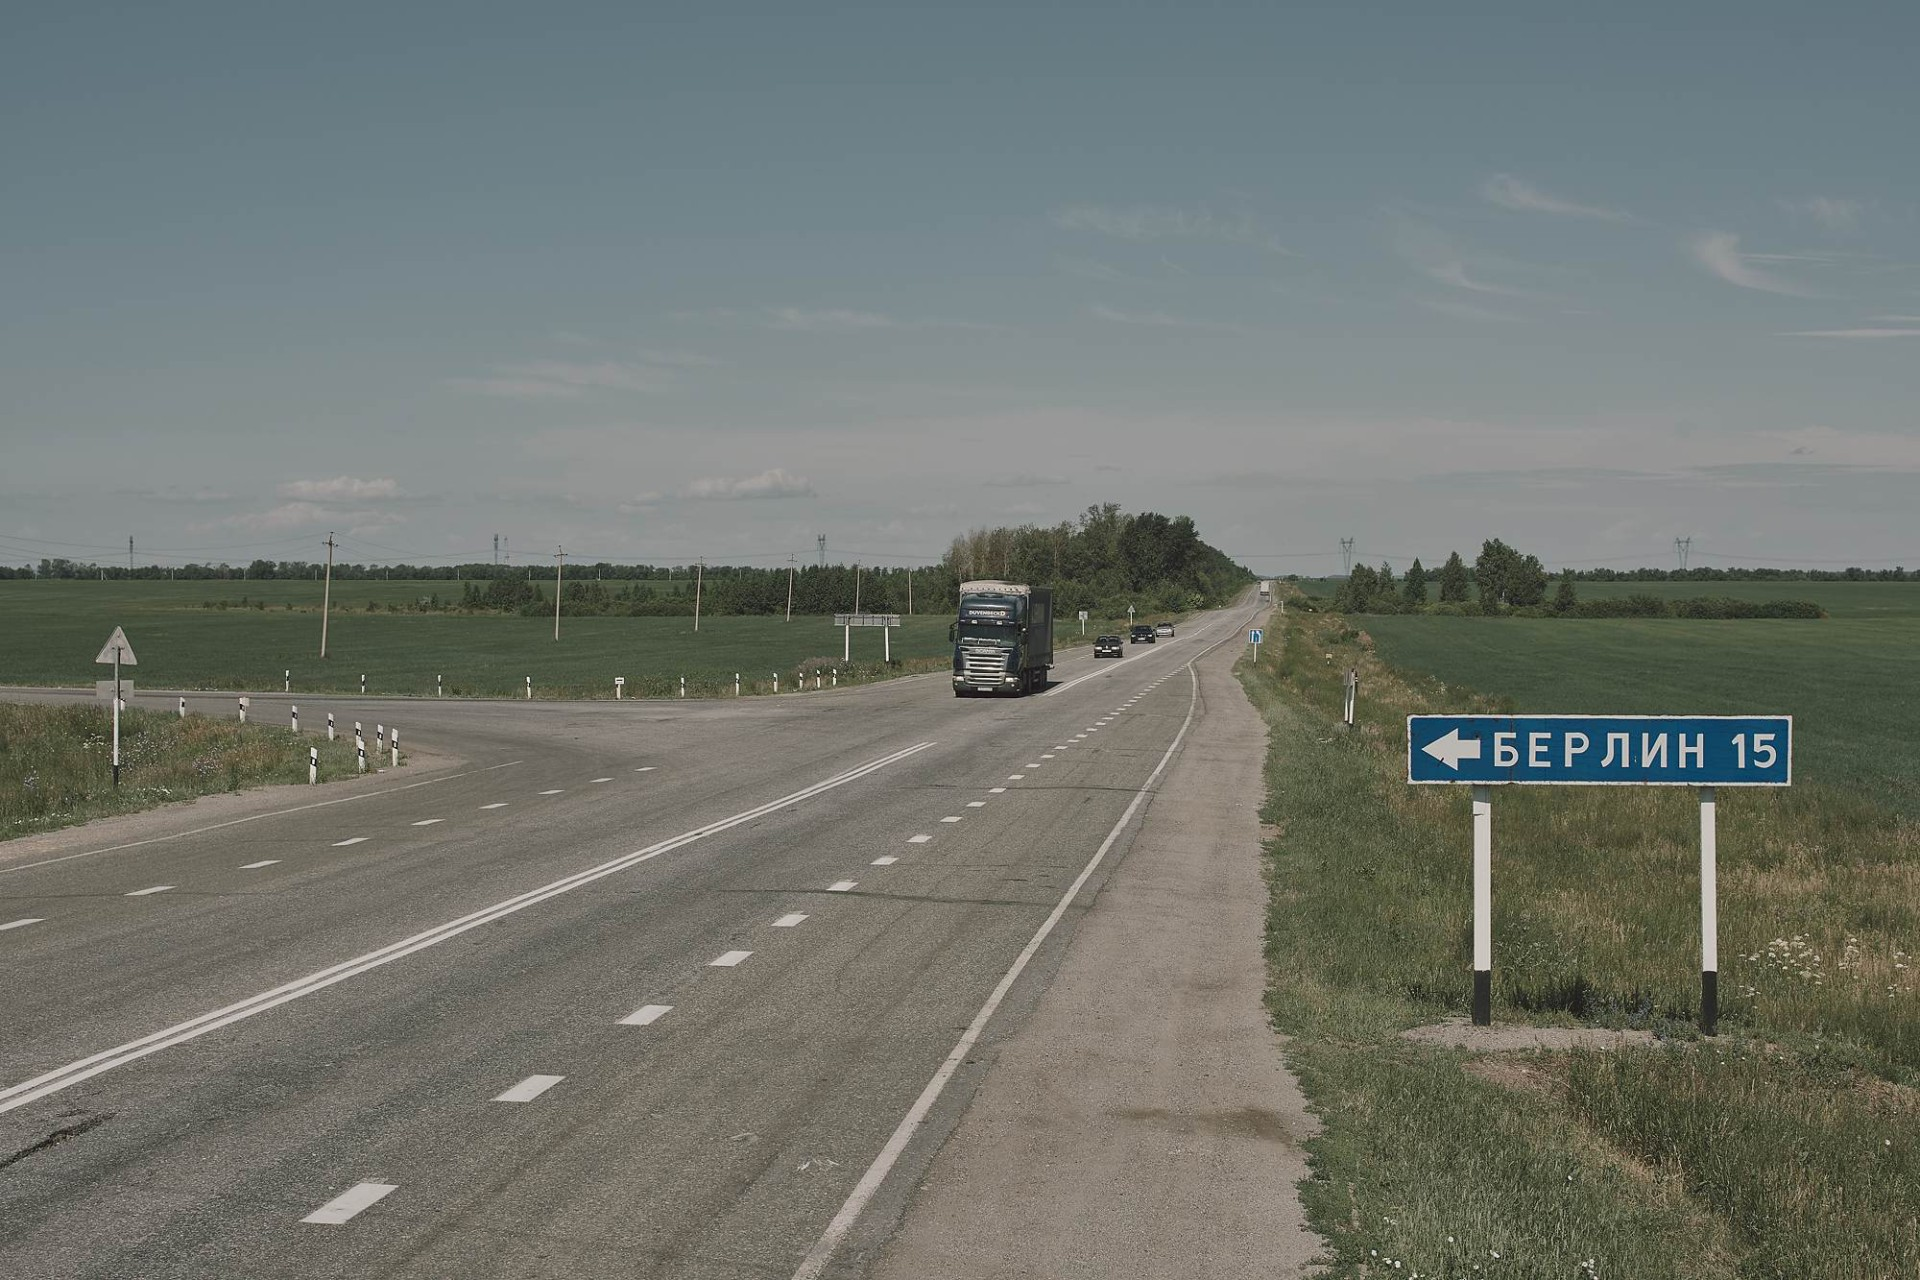 A road to Berlin village, named after Berlin, Germany,  occupied by the Russian army in 1760 and 1813.